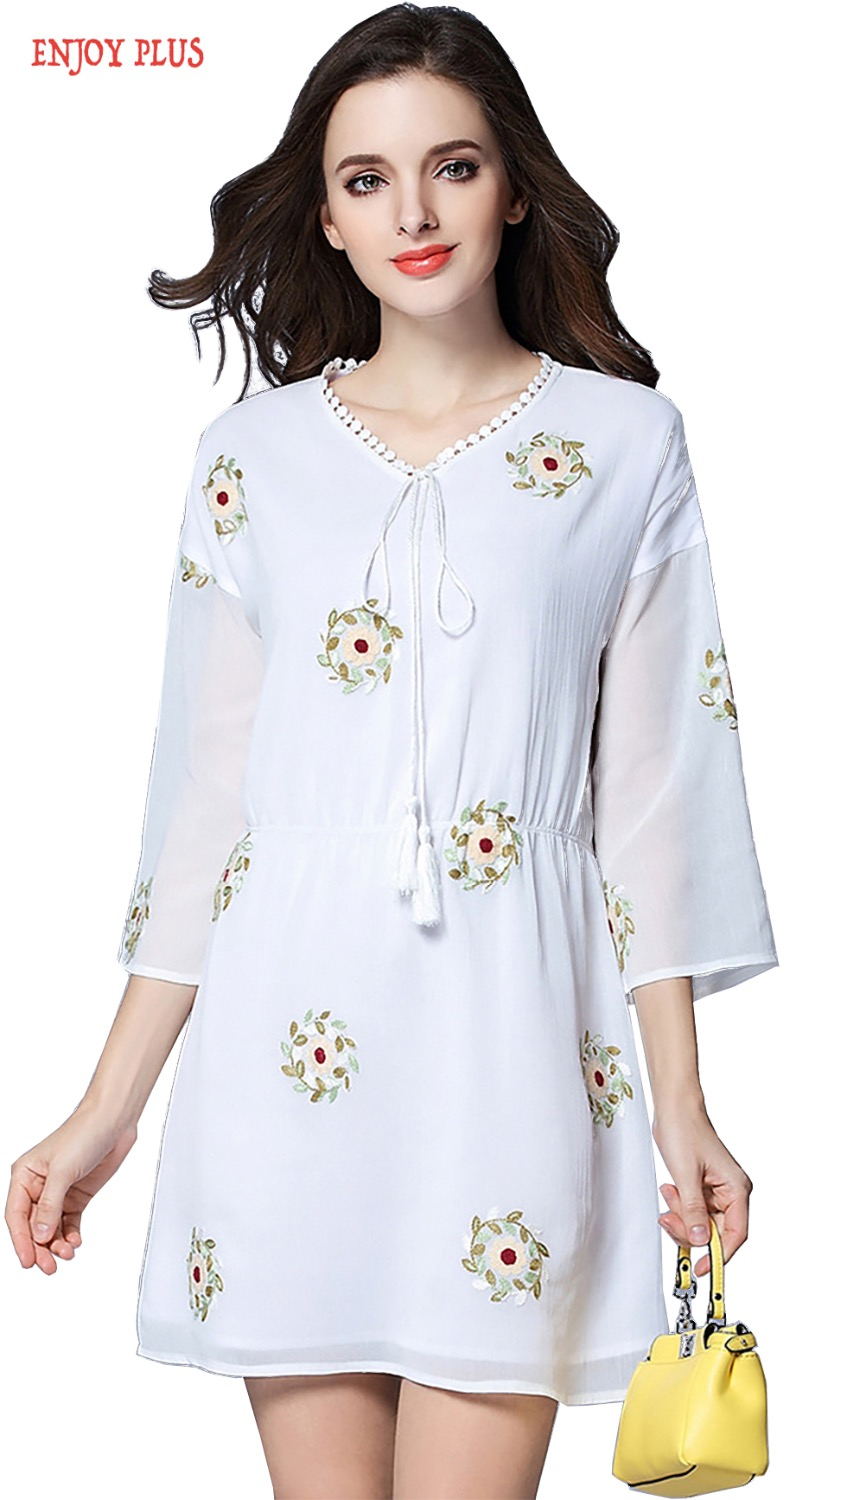 Online Get Cheap White Dress with Big Flowers -Aliexpress.com ...